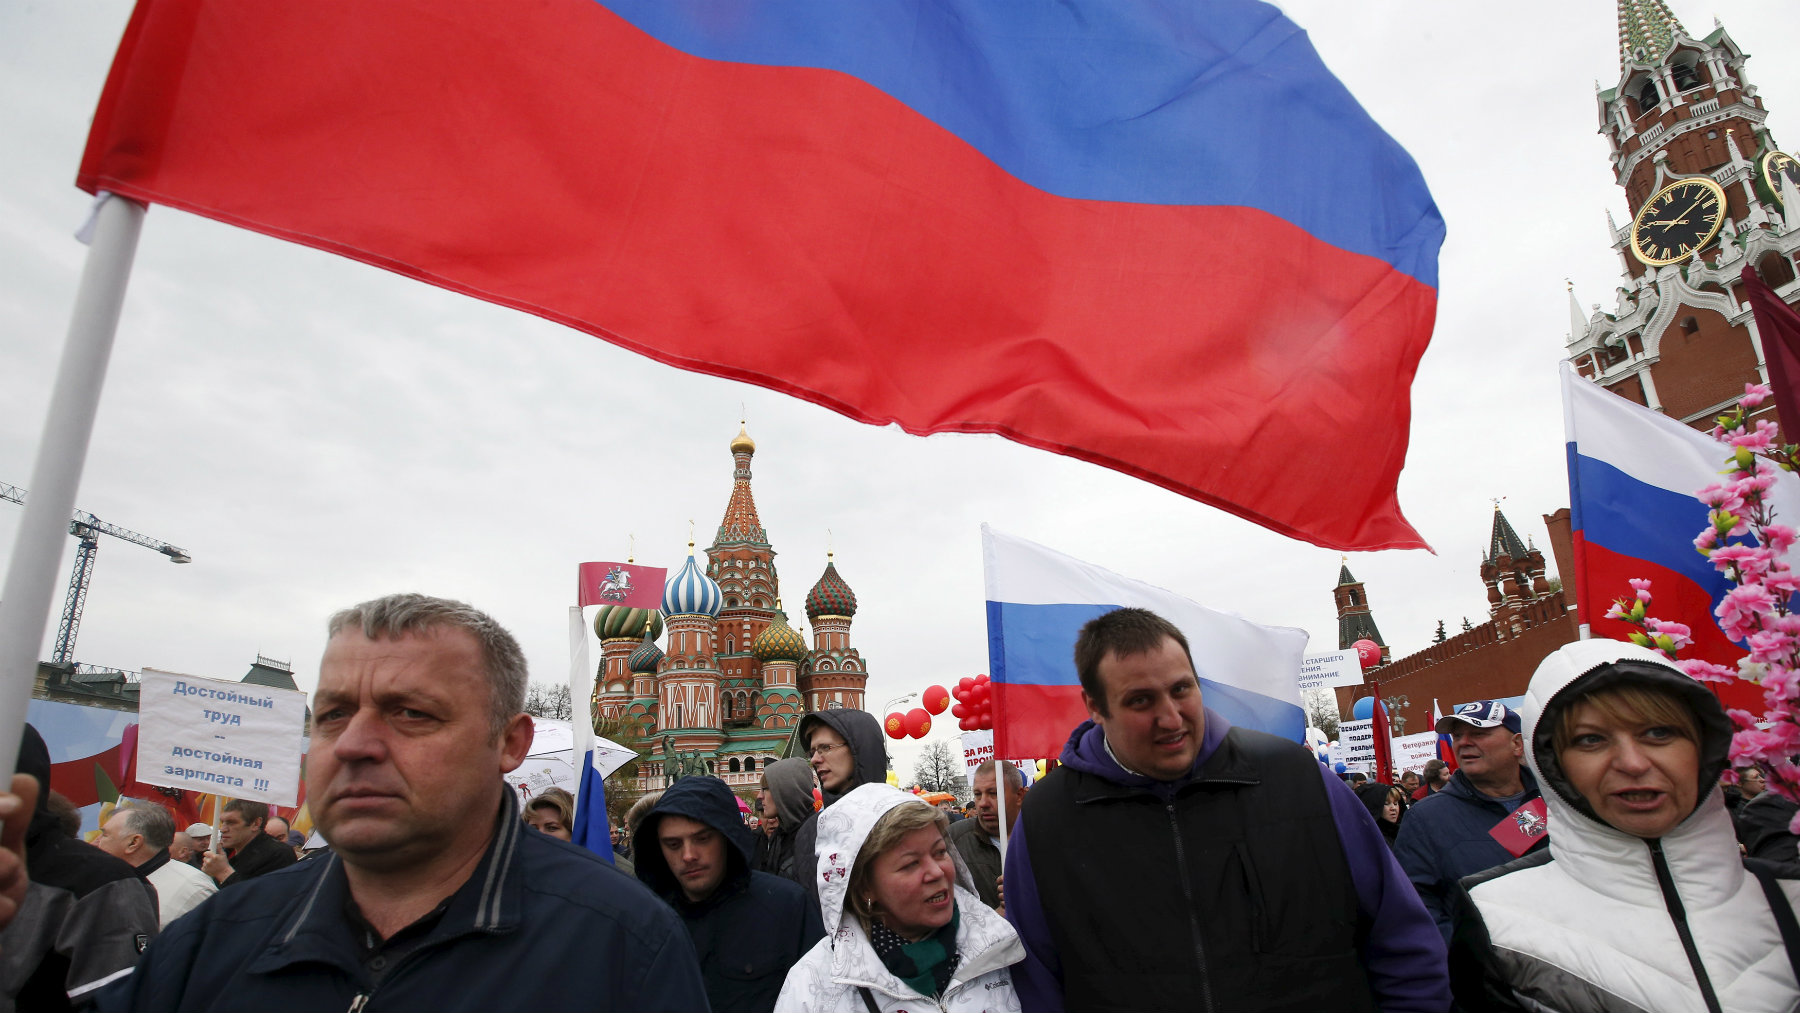 People walk with flags at Red Square during a 2015 May Day rally in Moscow.